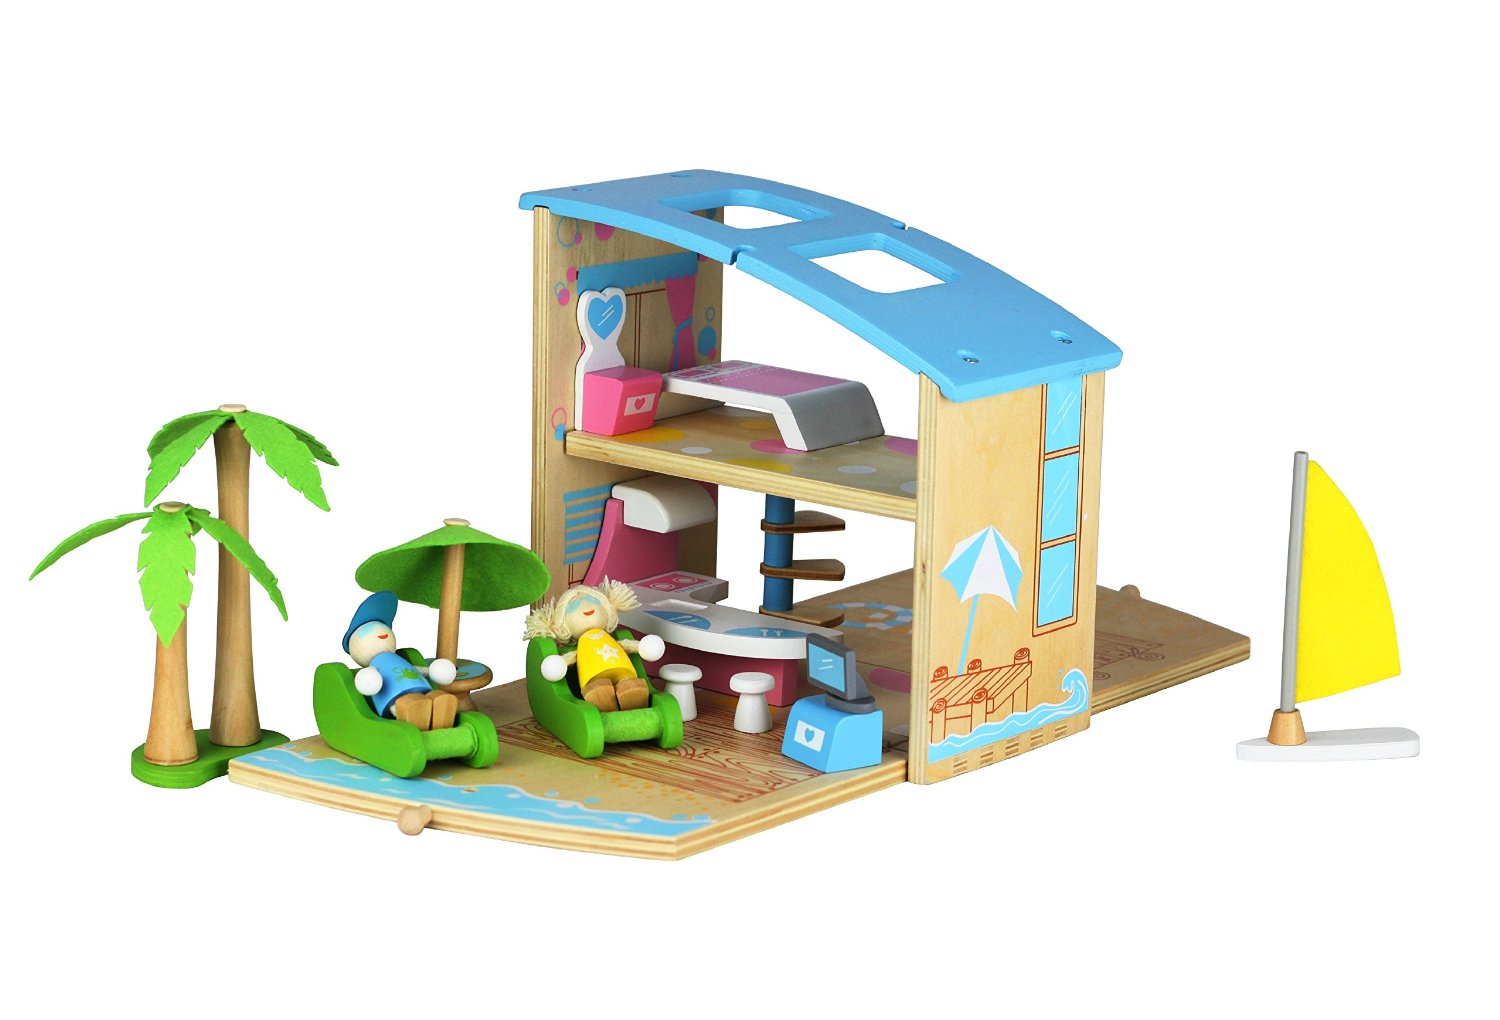 Casino Woodplay Beach Villa Wooden Toy Review